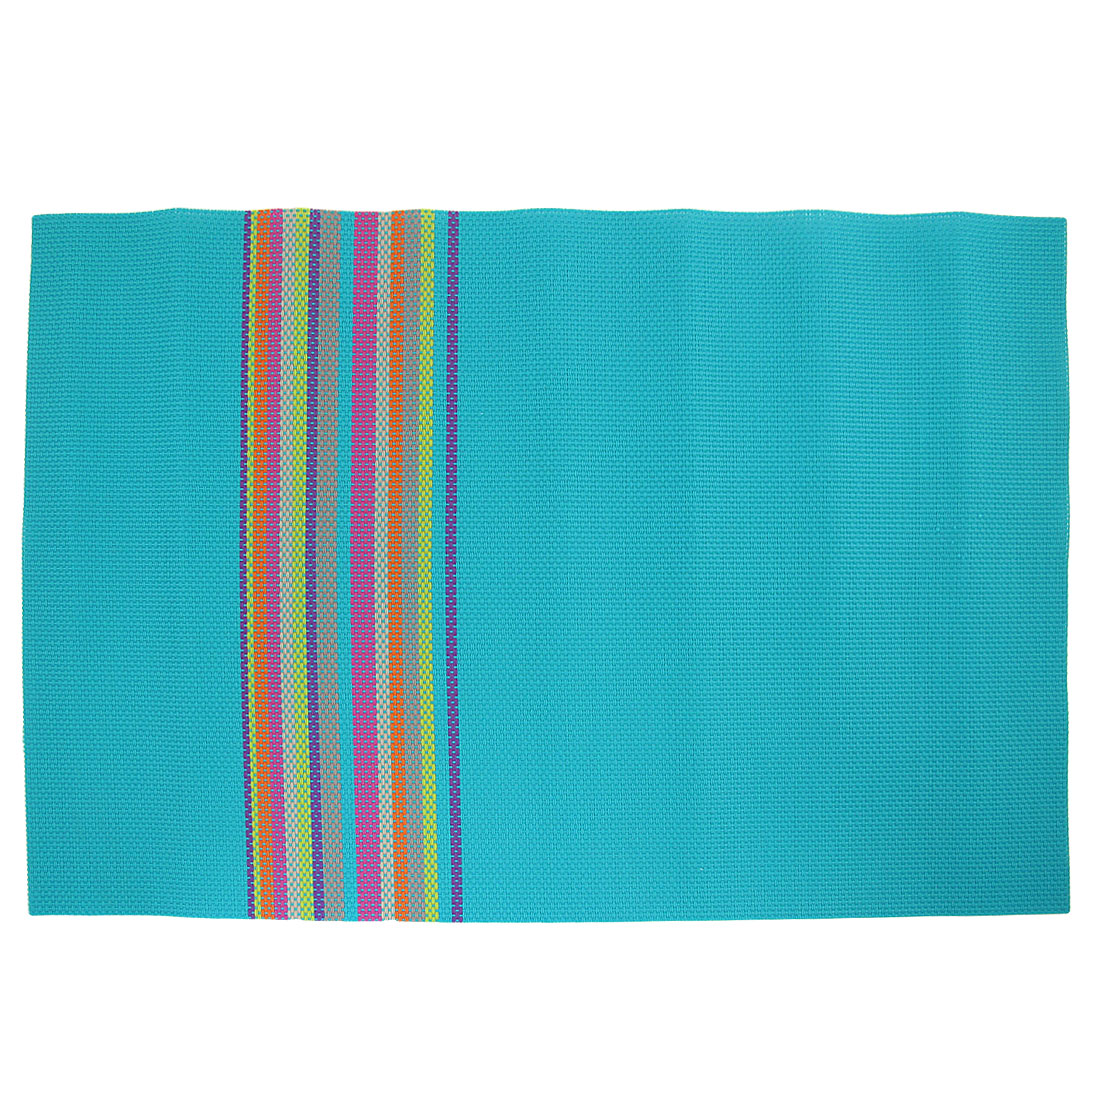 45 x 32cm Rectangle Soft Plastic Antislip Heat Resistant Mat Pad Turquoise